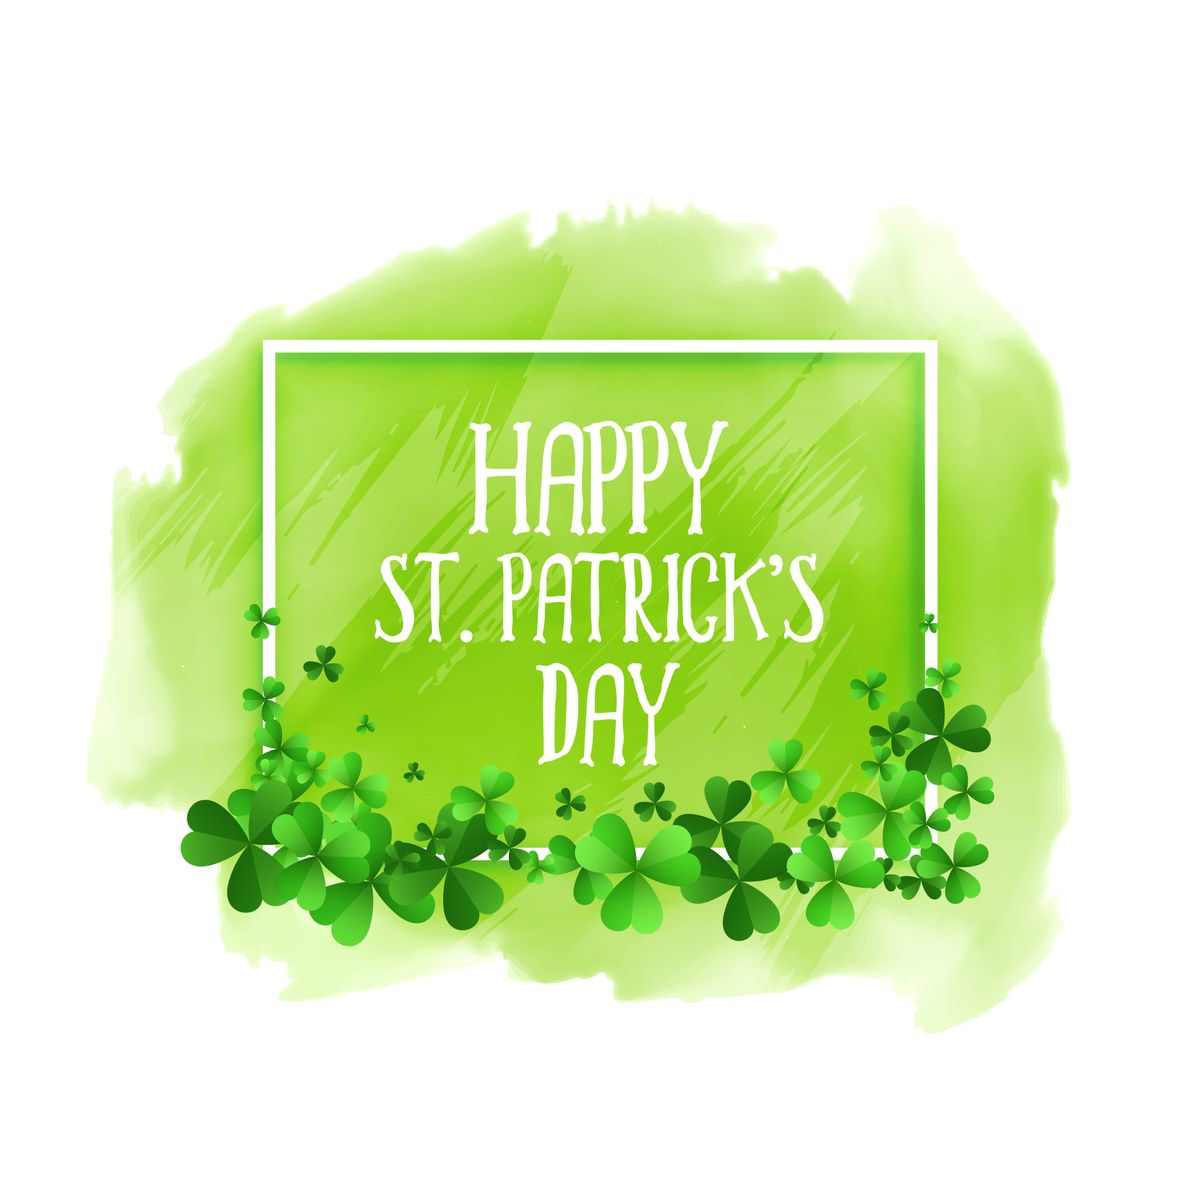 American Legend Homes wishes you a happy St. Patrick's Day